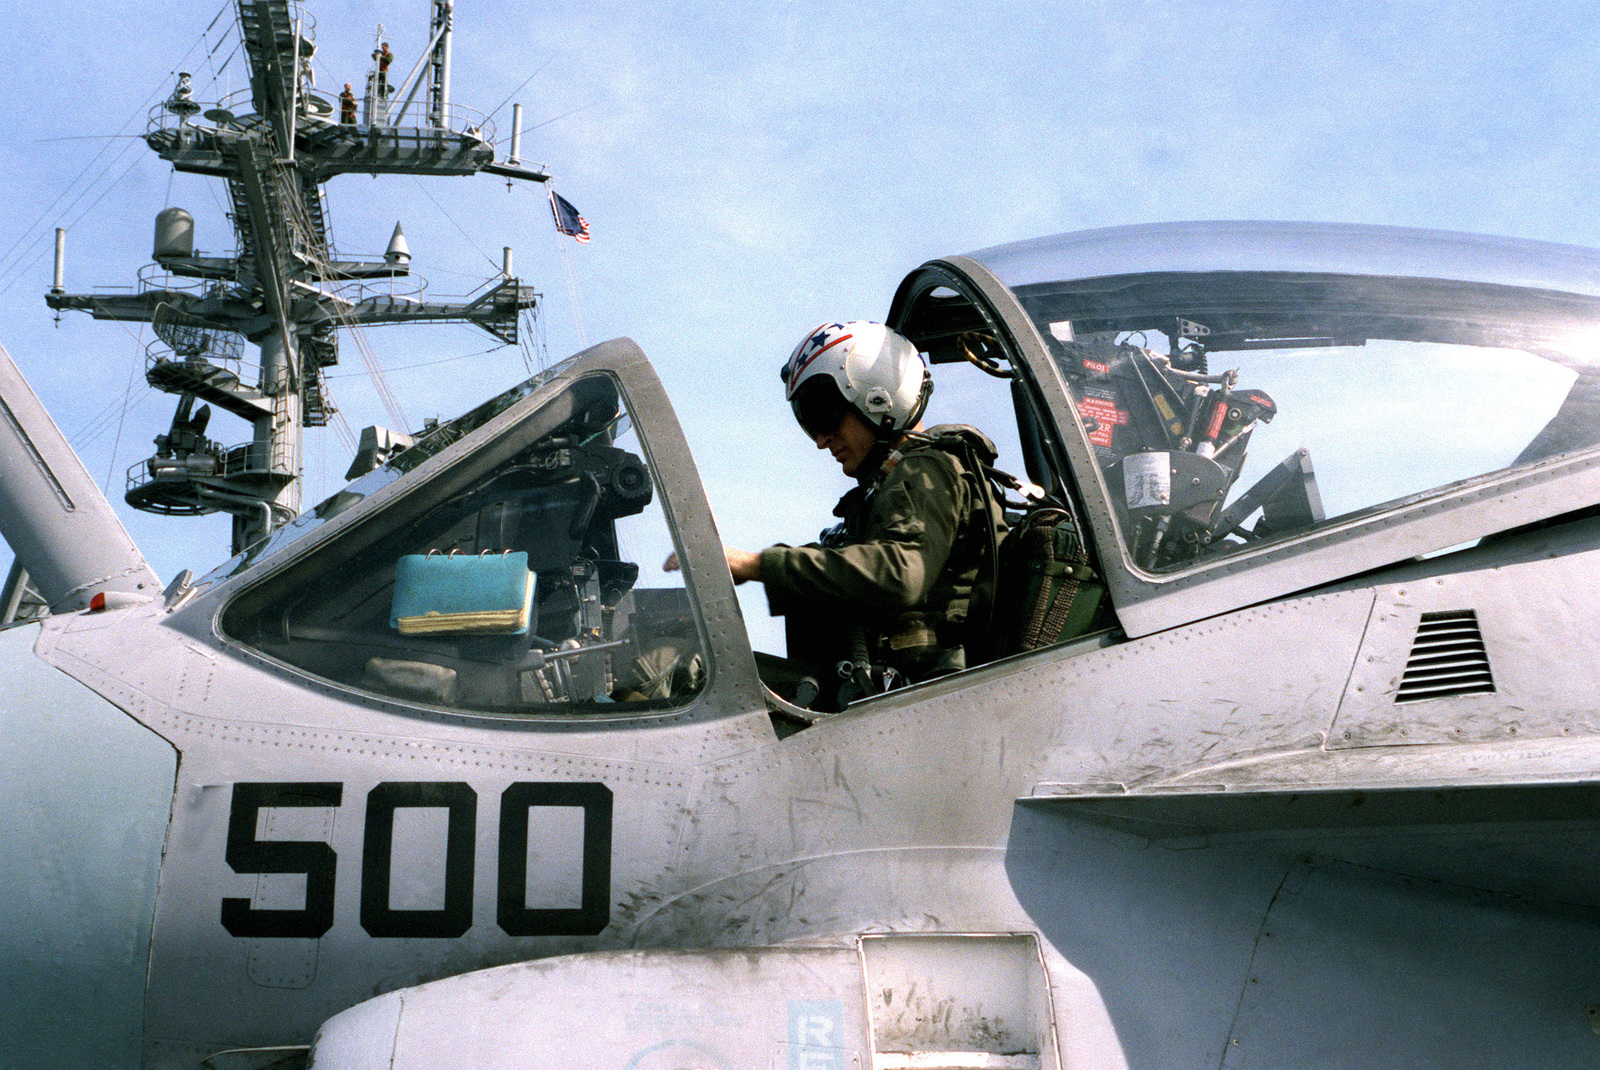 An Attack Squadron 34 (VA-34) pilot conducts a preflight check in the cockpit of his A-6E Intruder aircraft on the flight deck of the nuclear-powered aircraft carrier USS DWIGHT D. EISENHOWER (CVN 69)